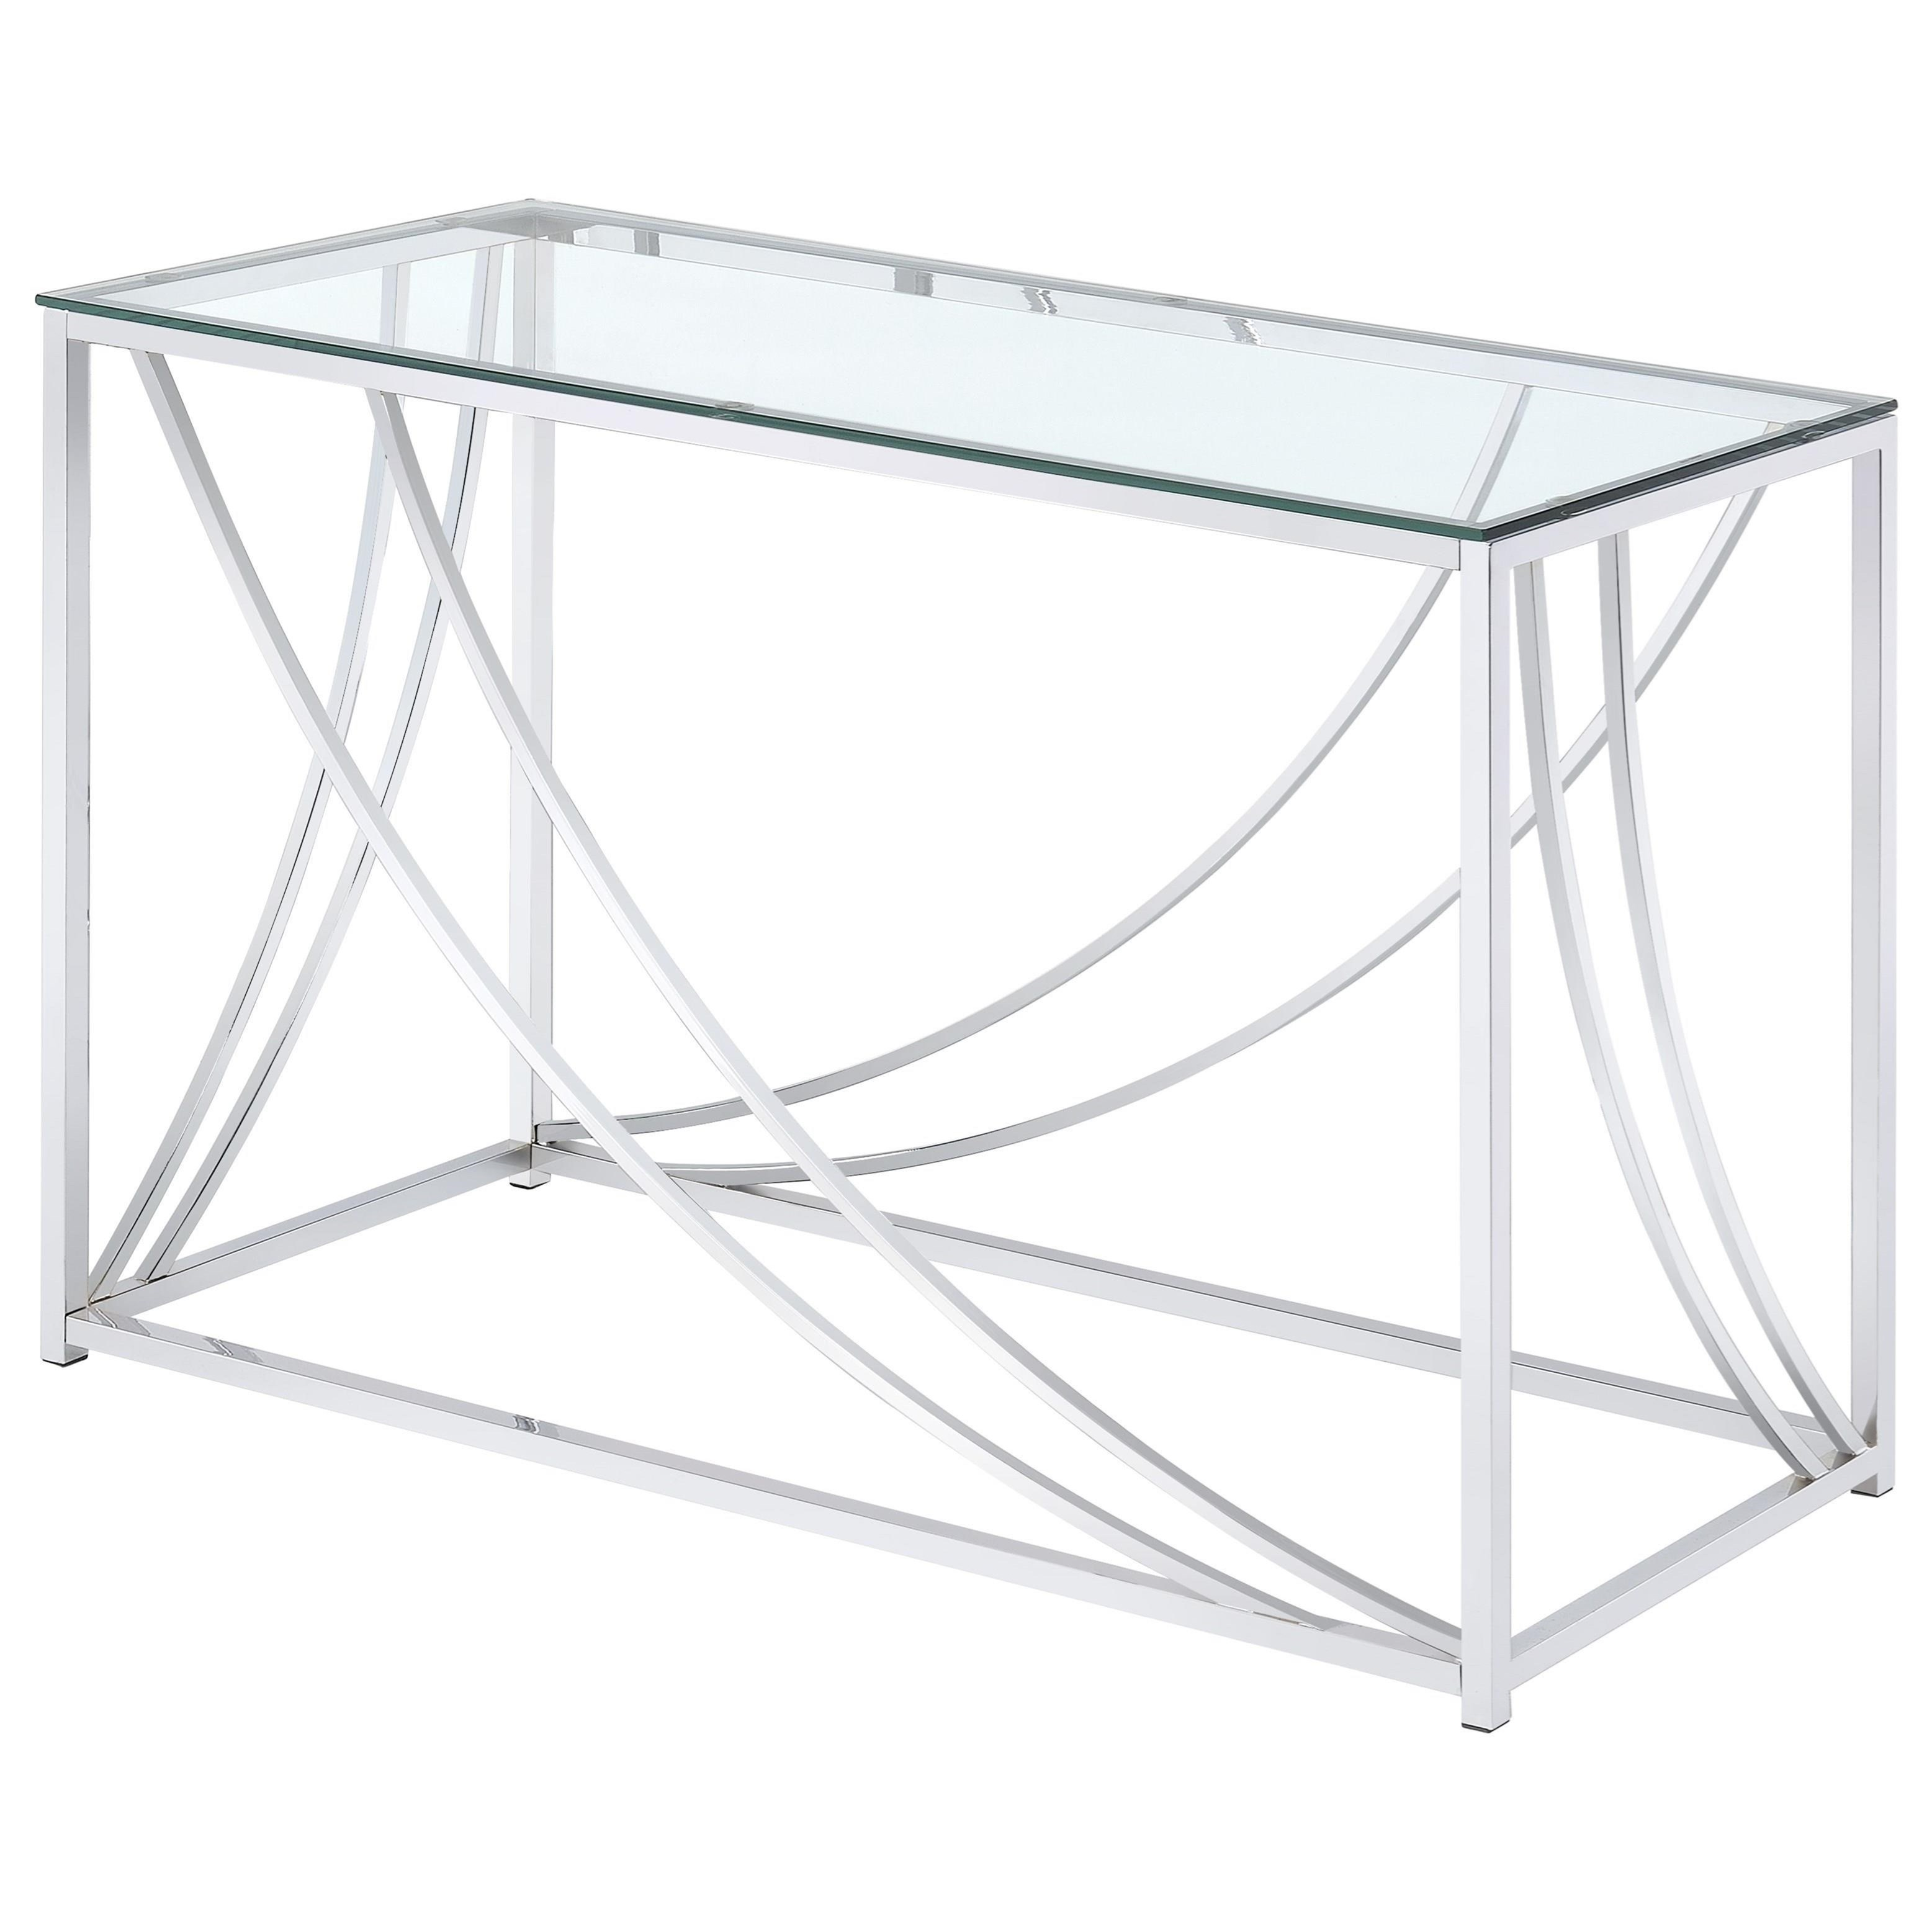 720490 Sofa Table by Coaster at Rife's Home Furniture